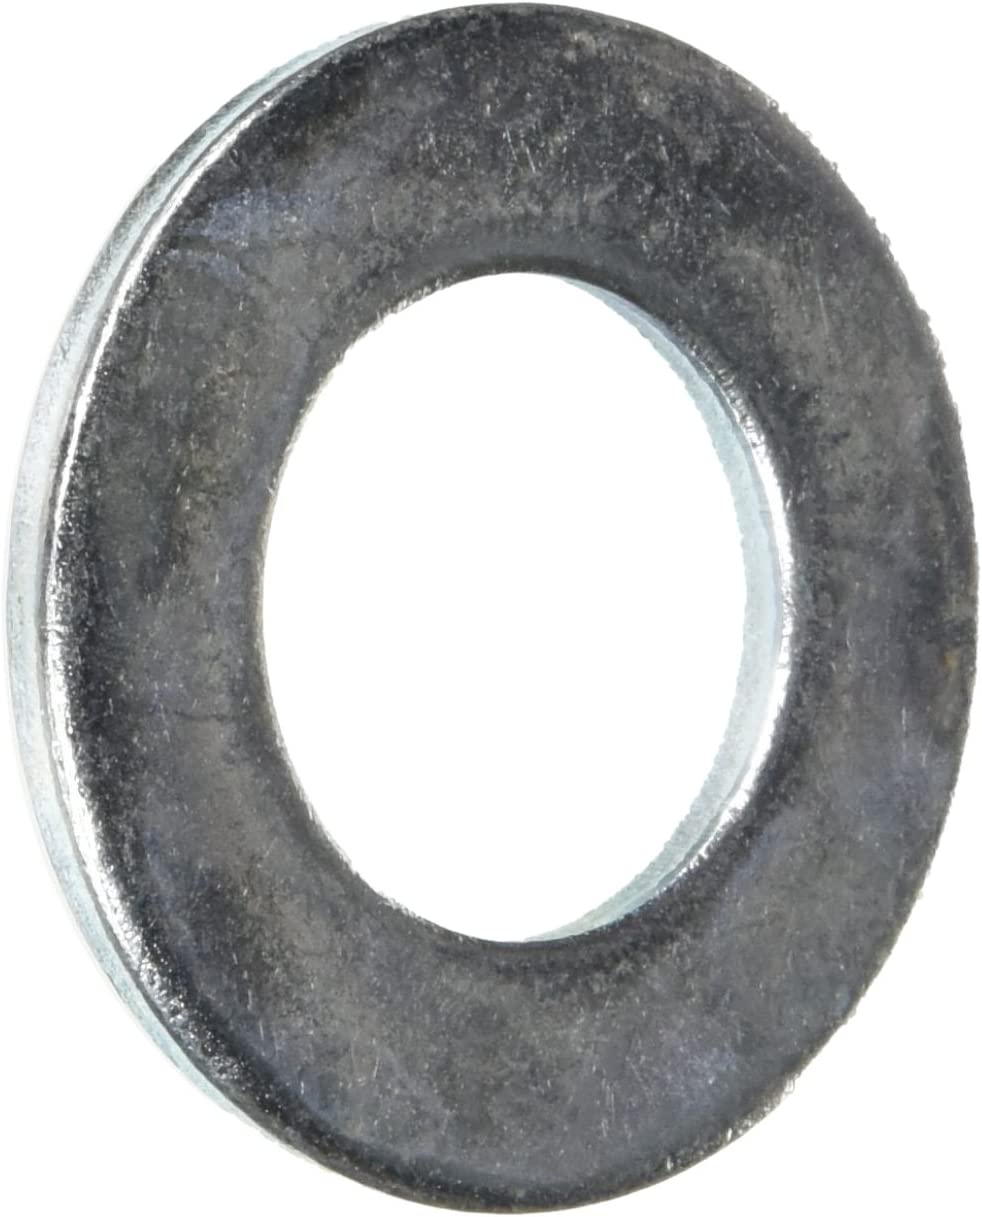 The Hillman Group 280044 1-1//4-Inch Flat Washer